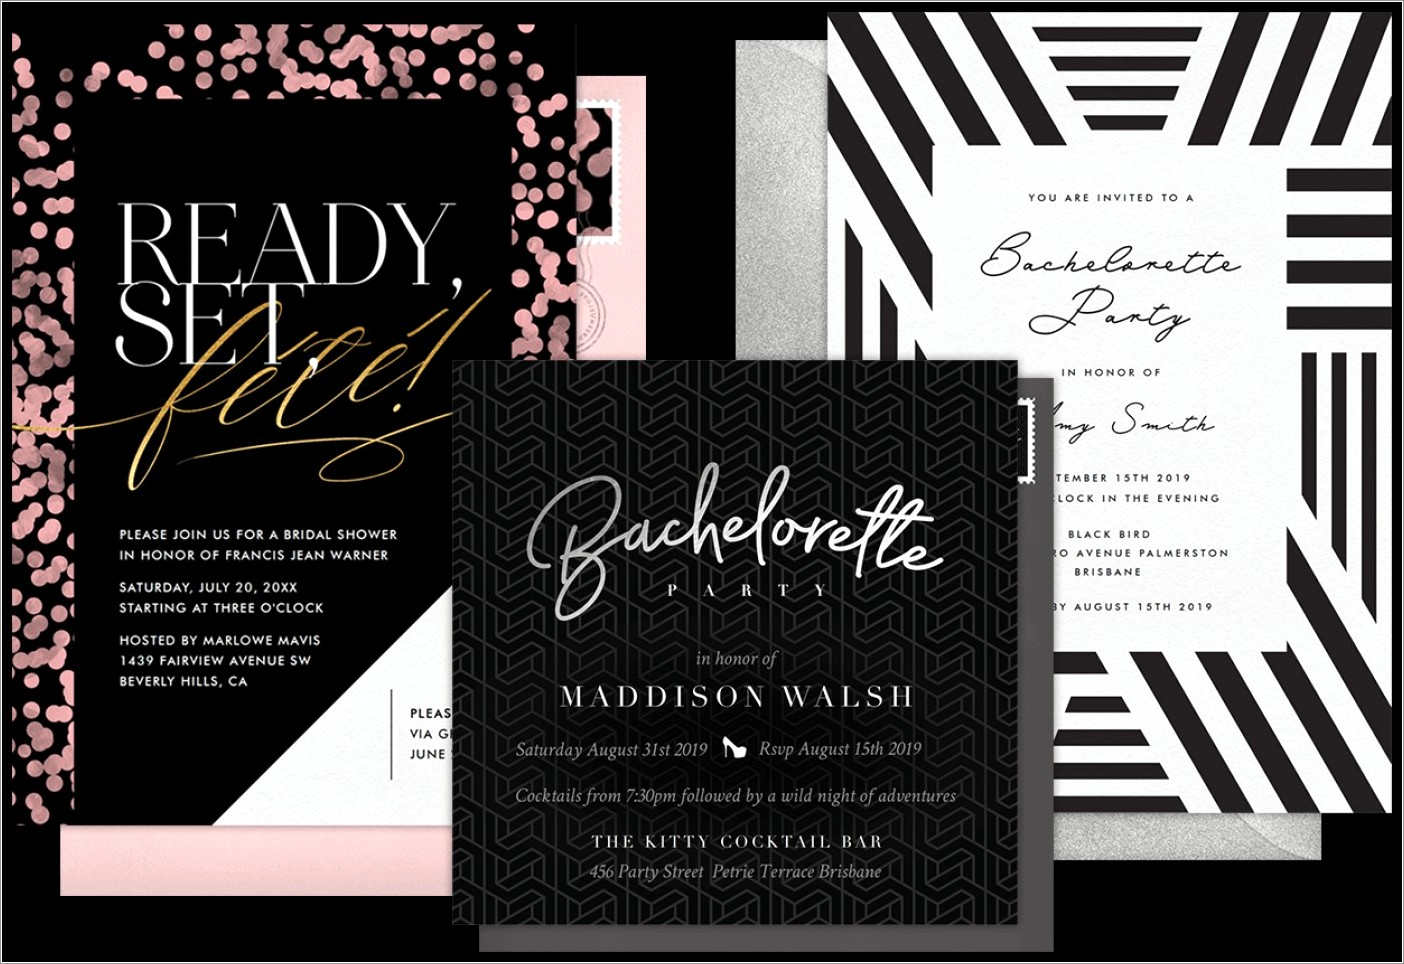 Create Your Own Invitations Free Online